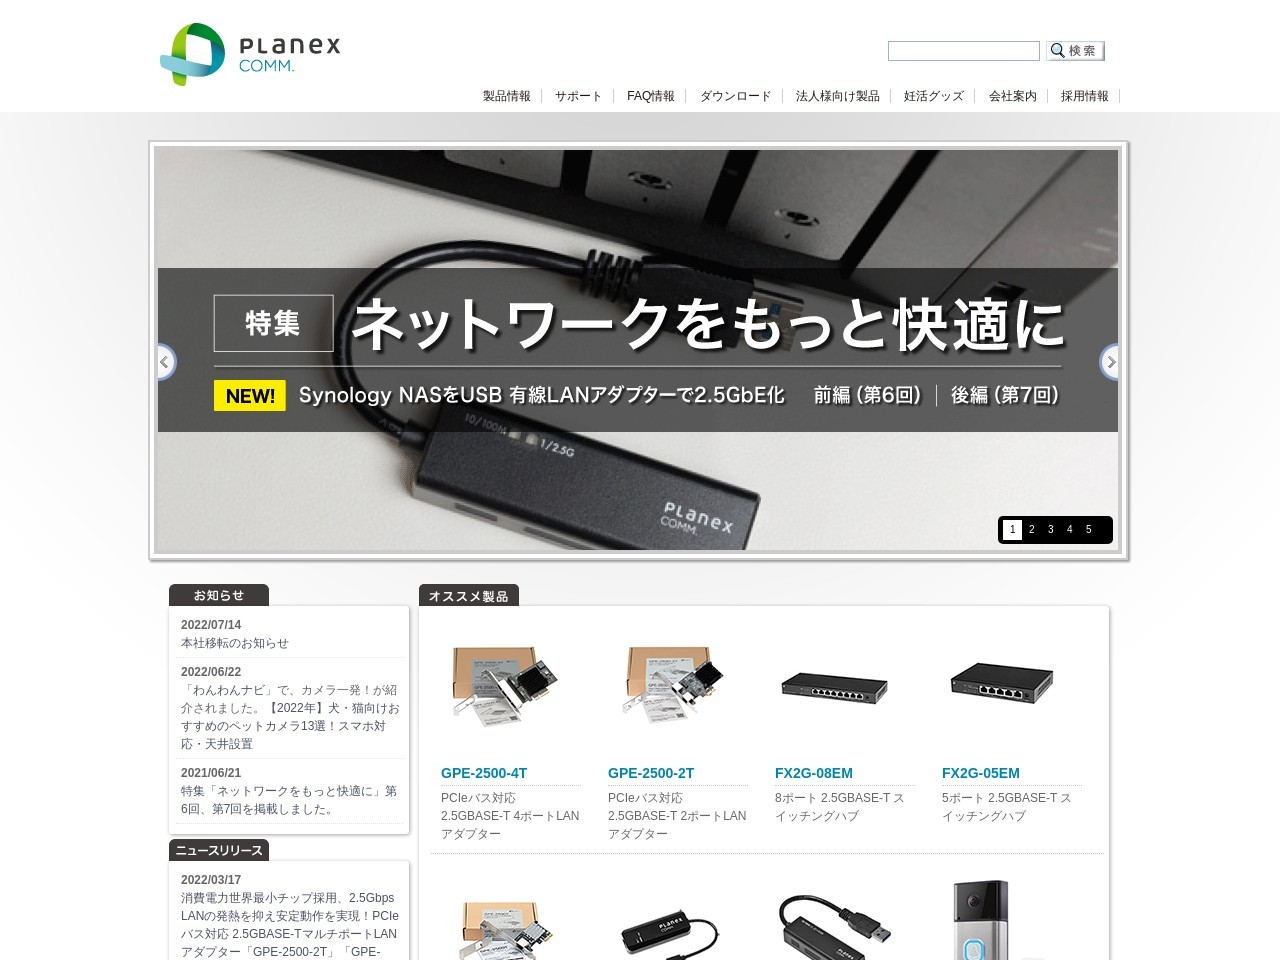 https://www.planex.co.jp/products/cs-qr20/